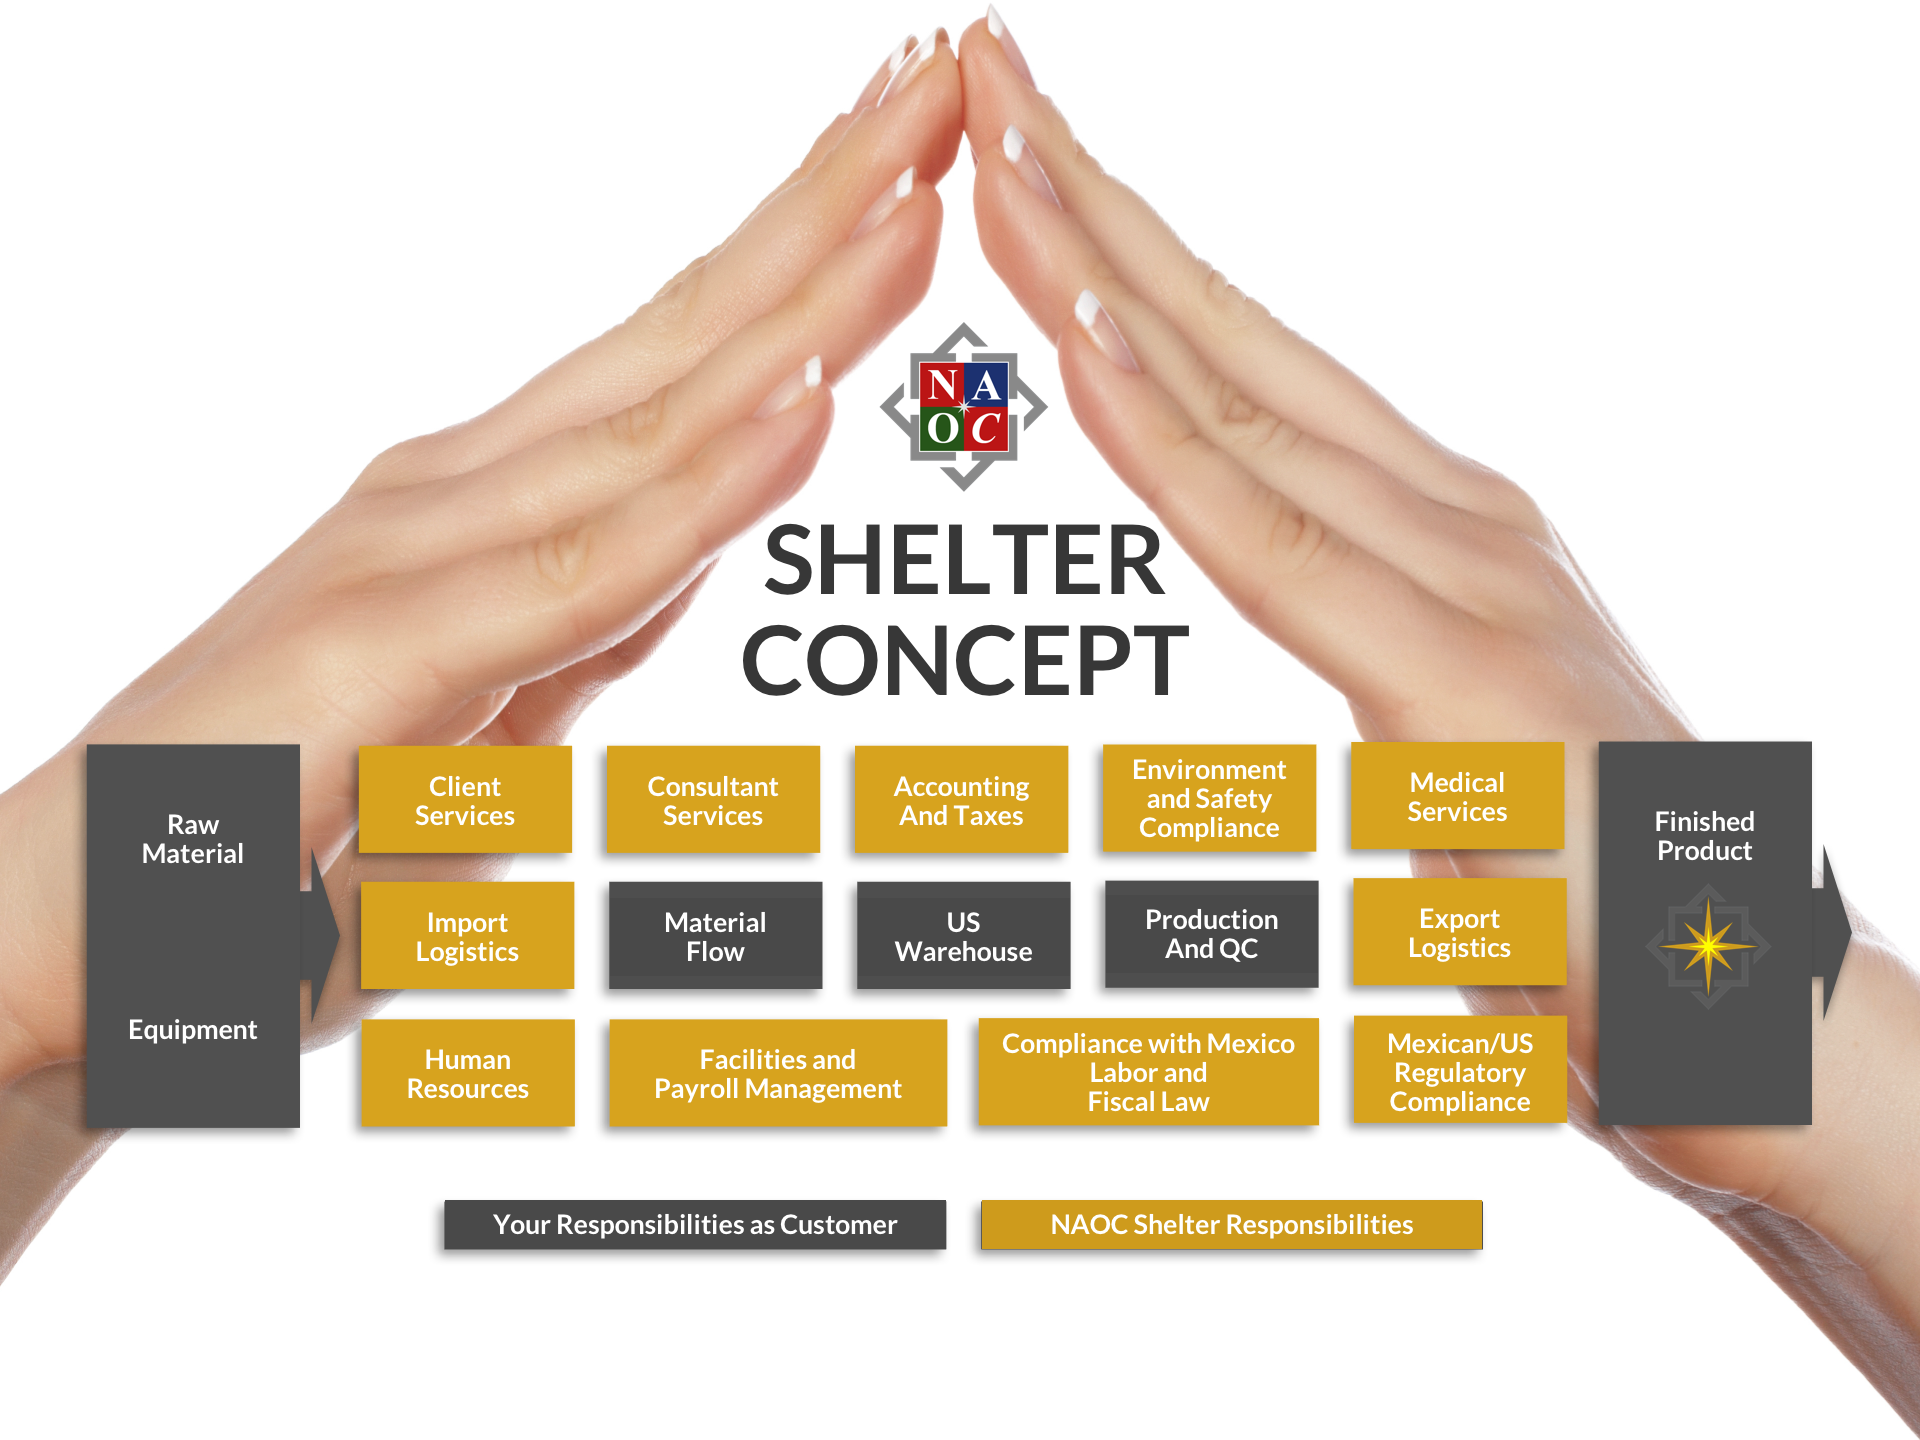 Mexican Shelter Responsibilities for customer and NAOC